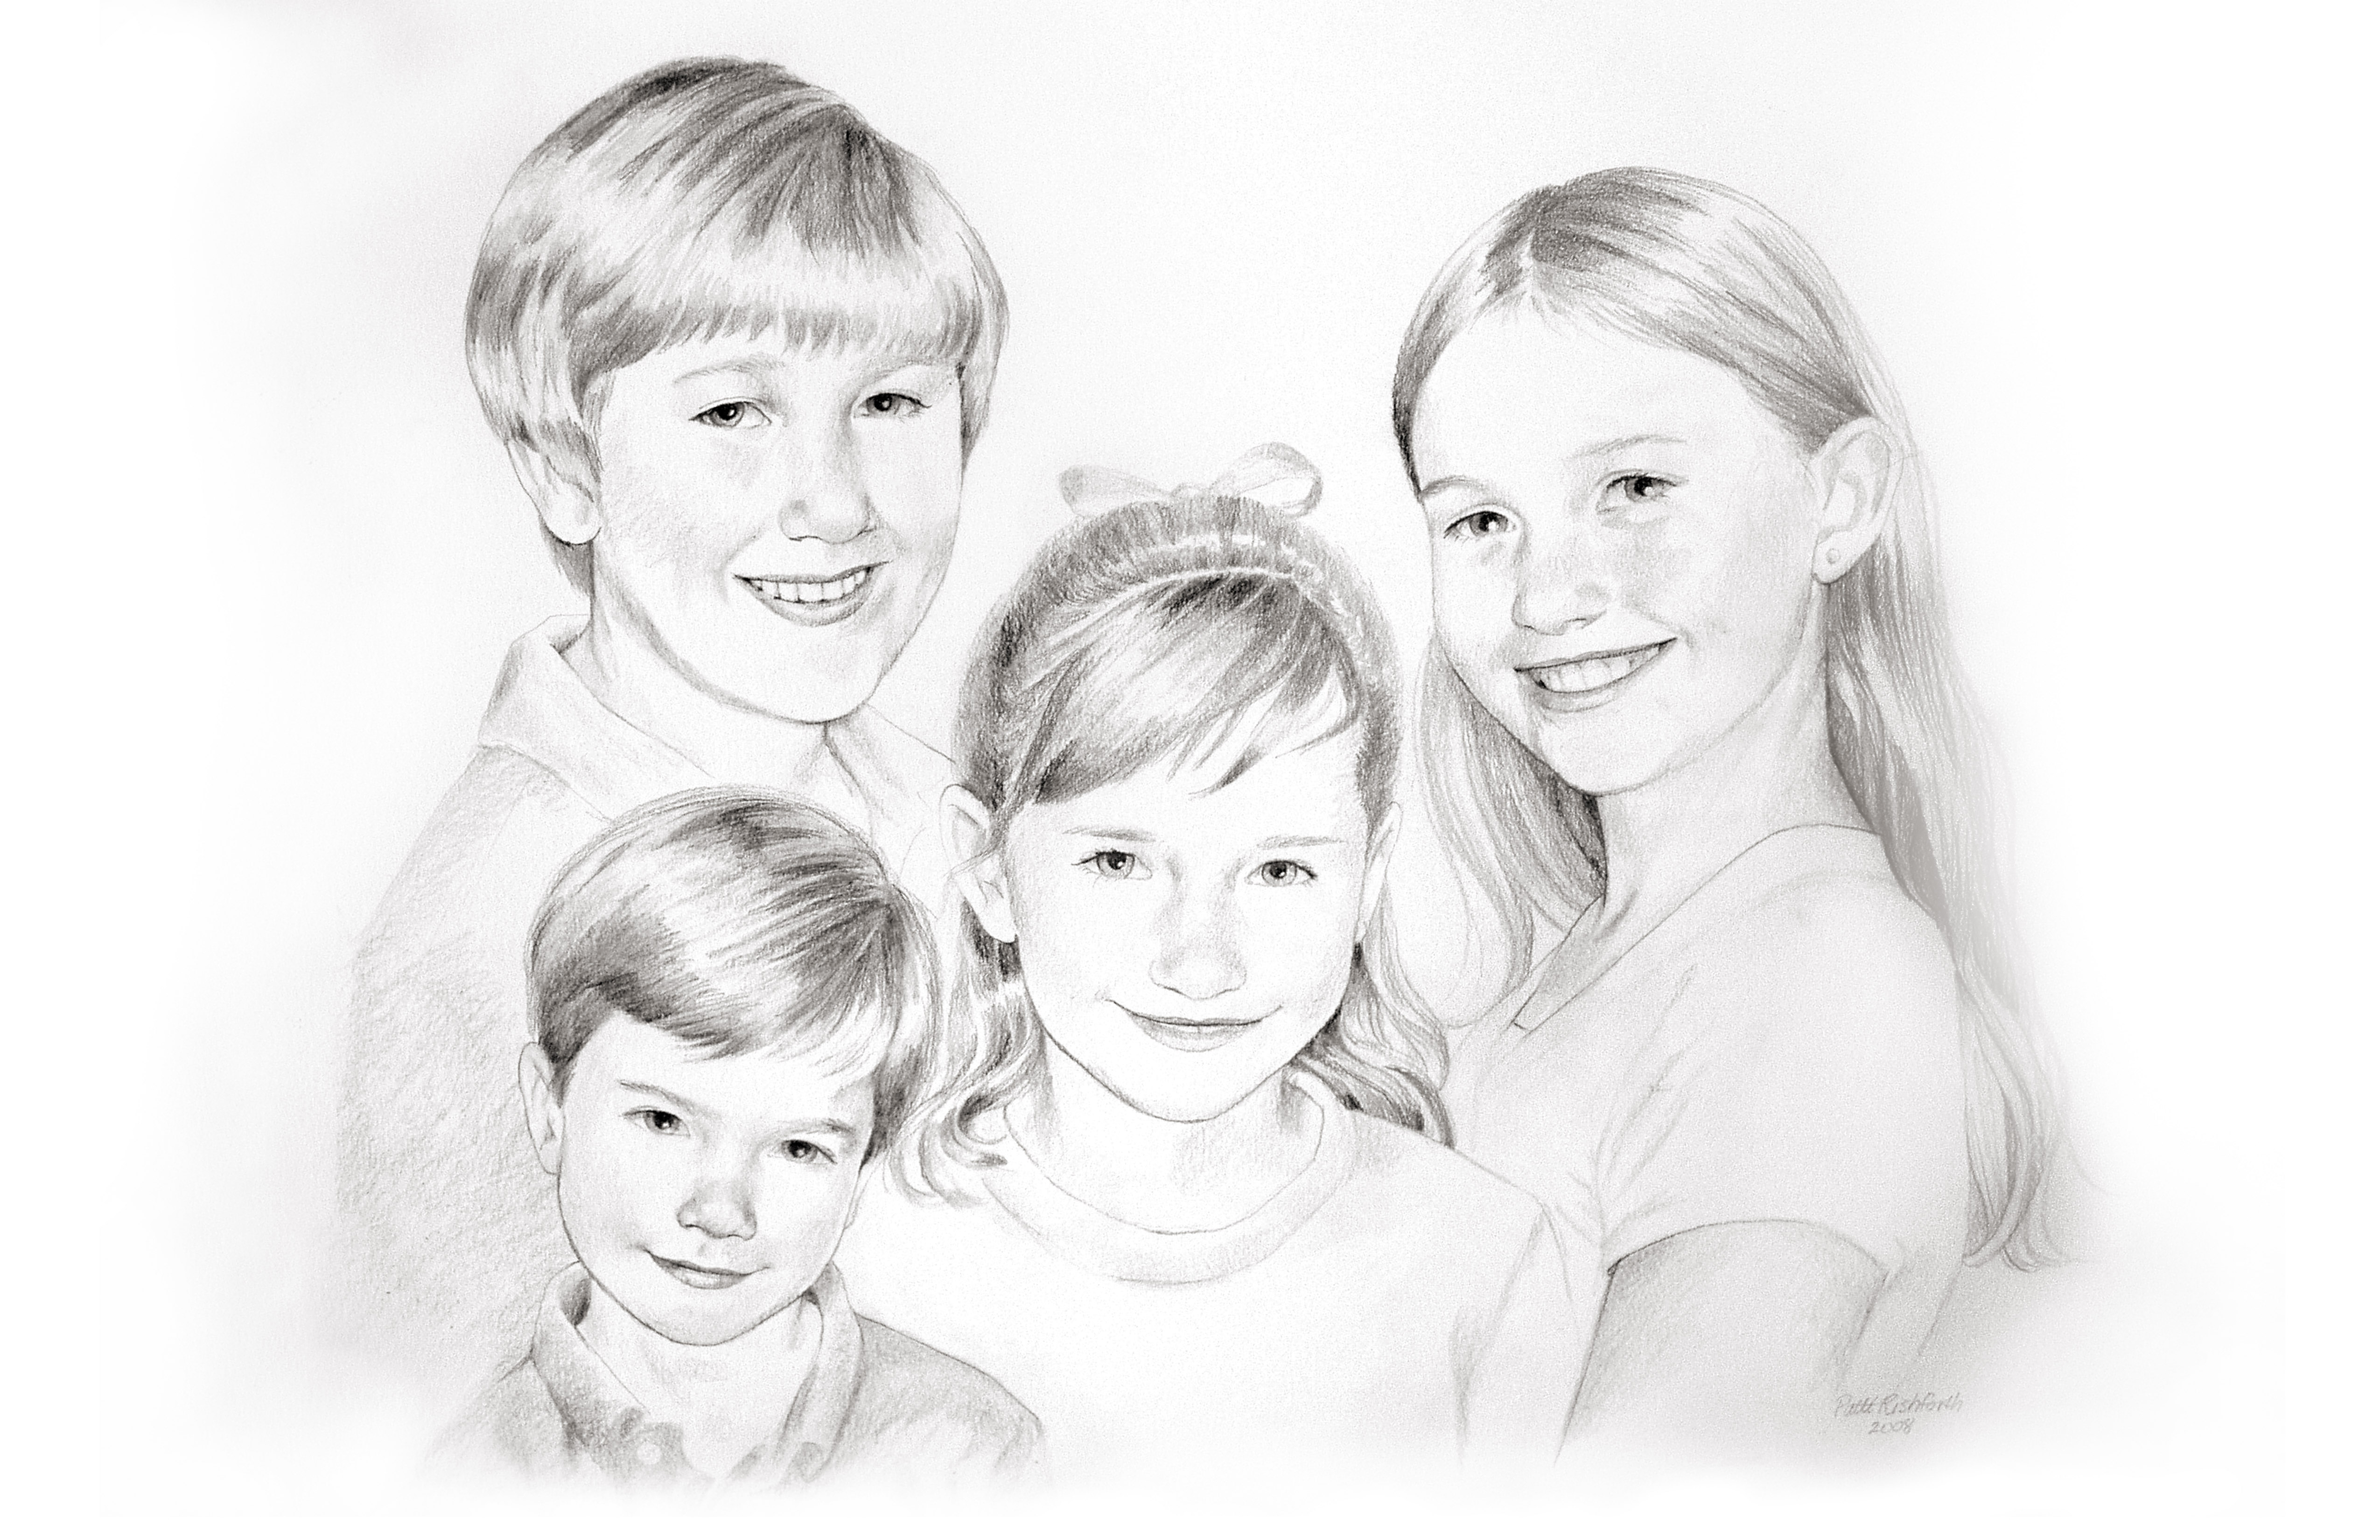 Kids sketched from pics I   took quickly at a boutique